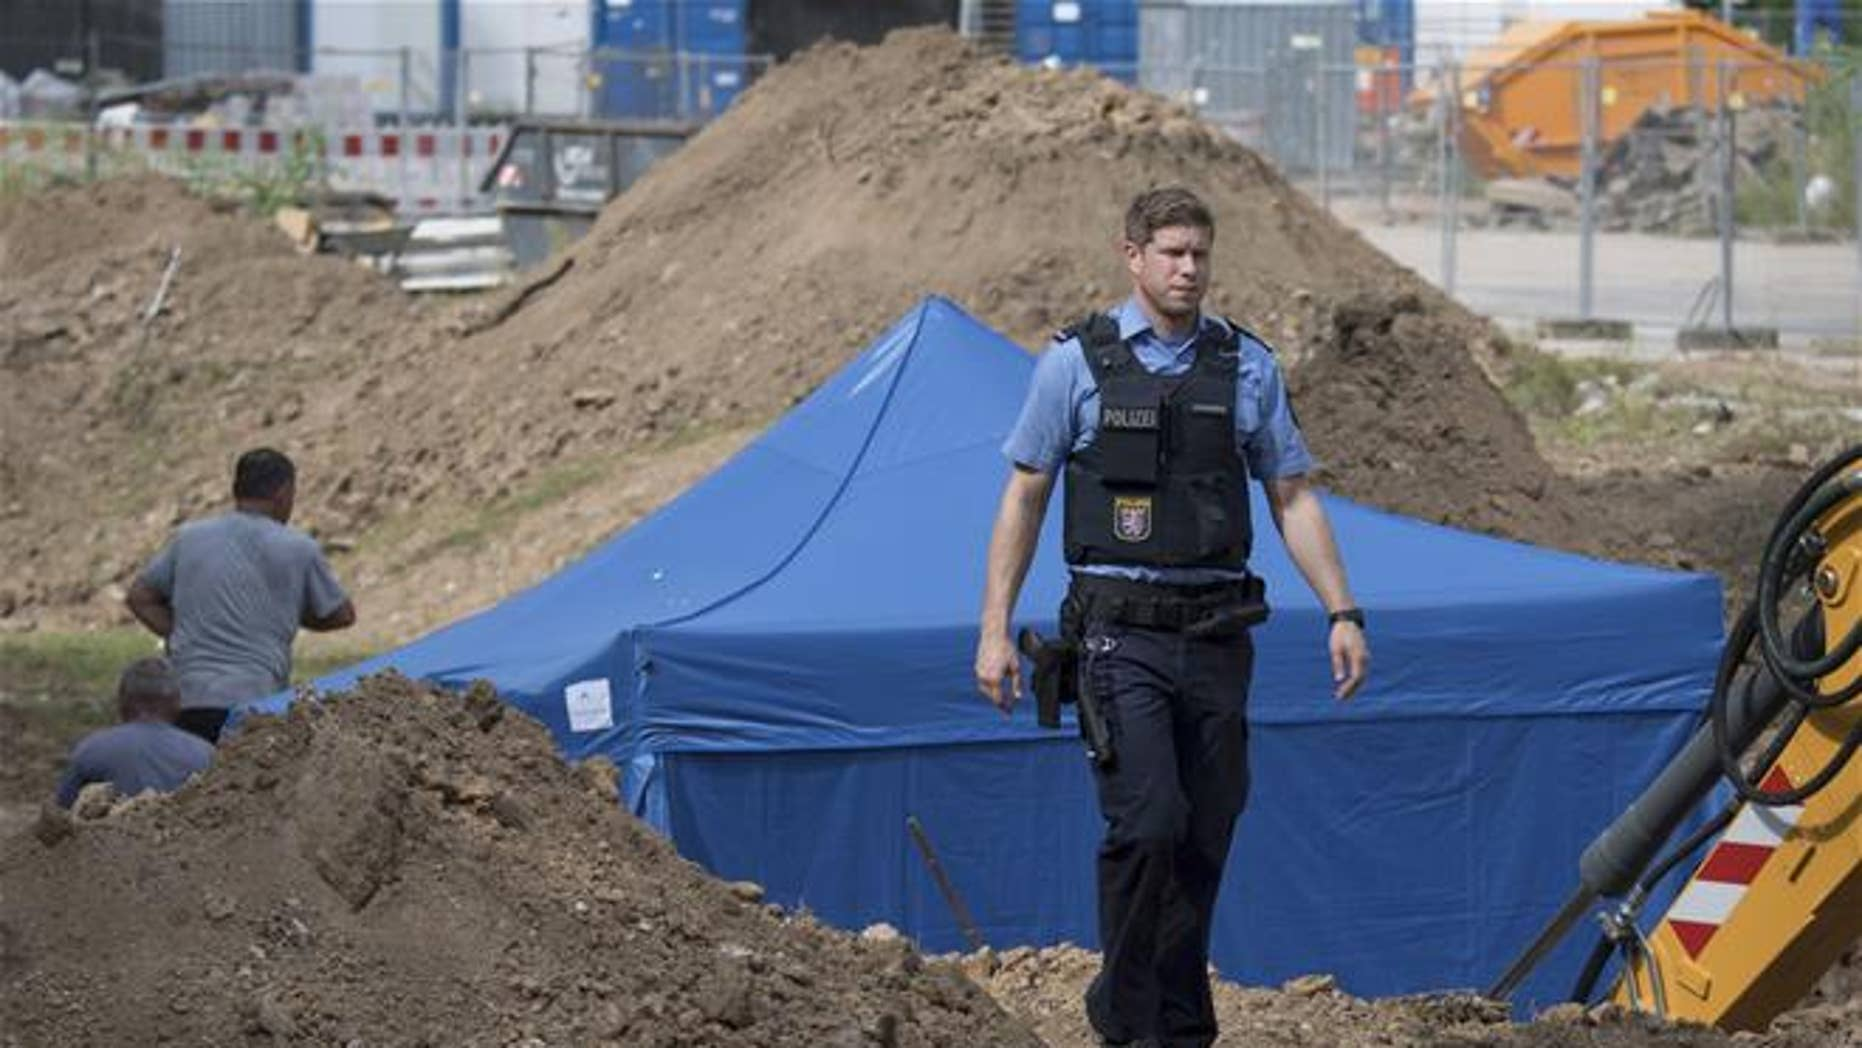 In this photo taken Wednesday, Aug. 30, 2017 in Frankfurt, Germany, a police officer passes a blue tent that was set up over a bomb of a type dropped by British bombers during World War II.